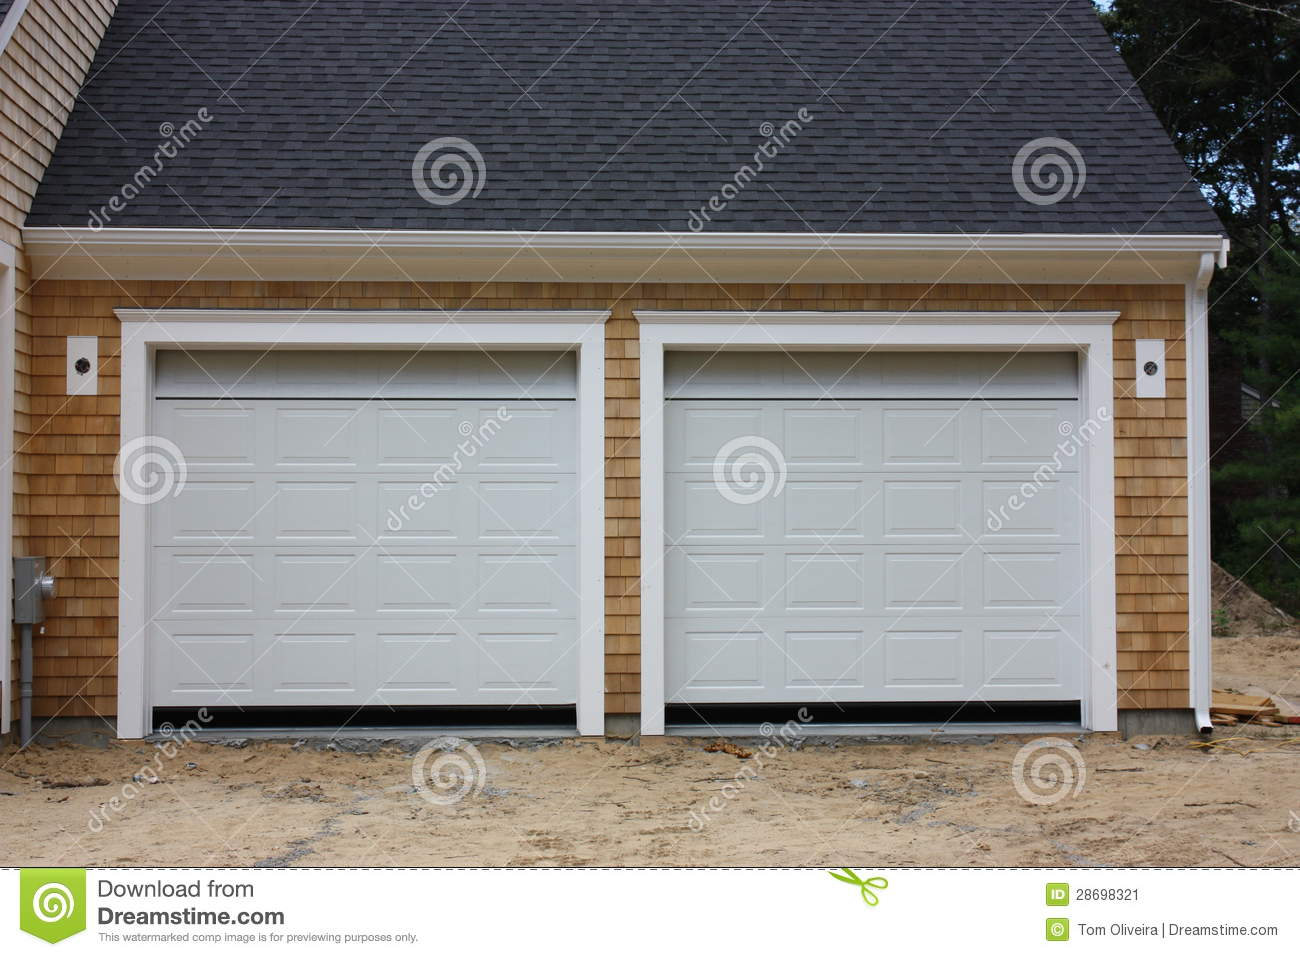 New 2 Car Garage Stock Image Image 28698321